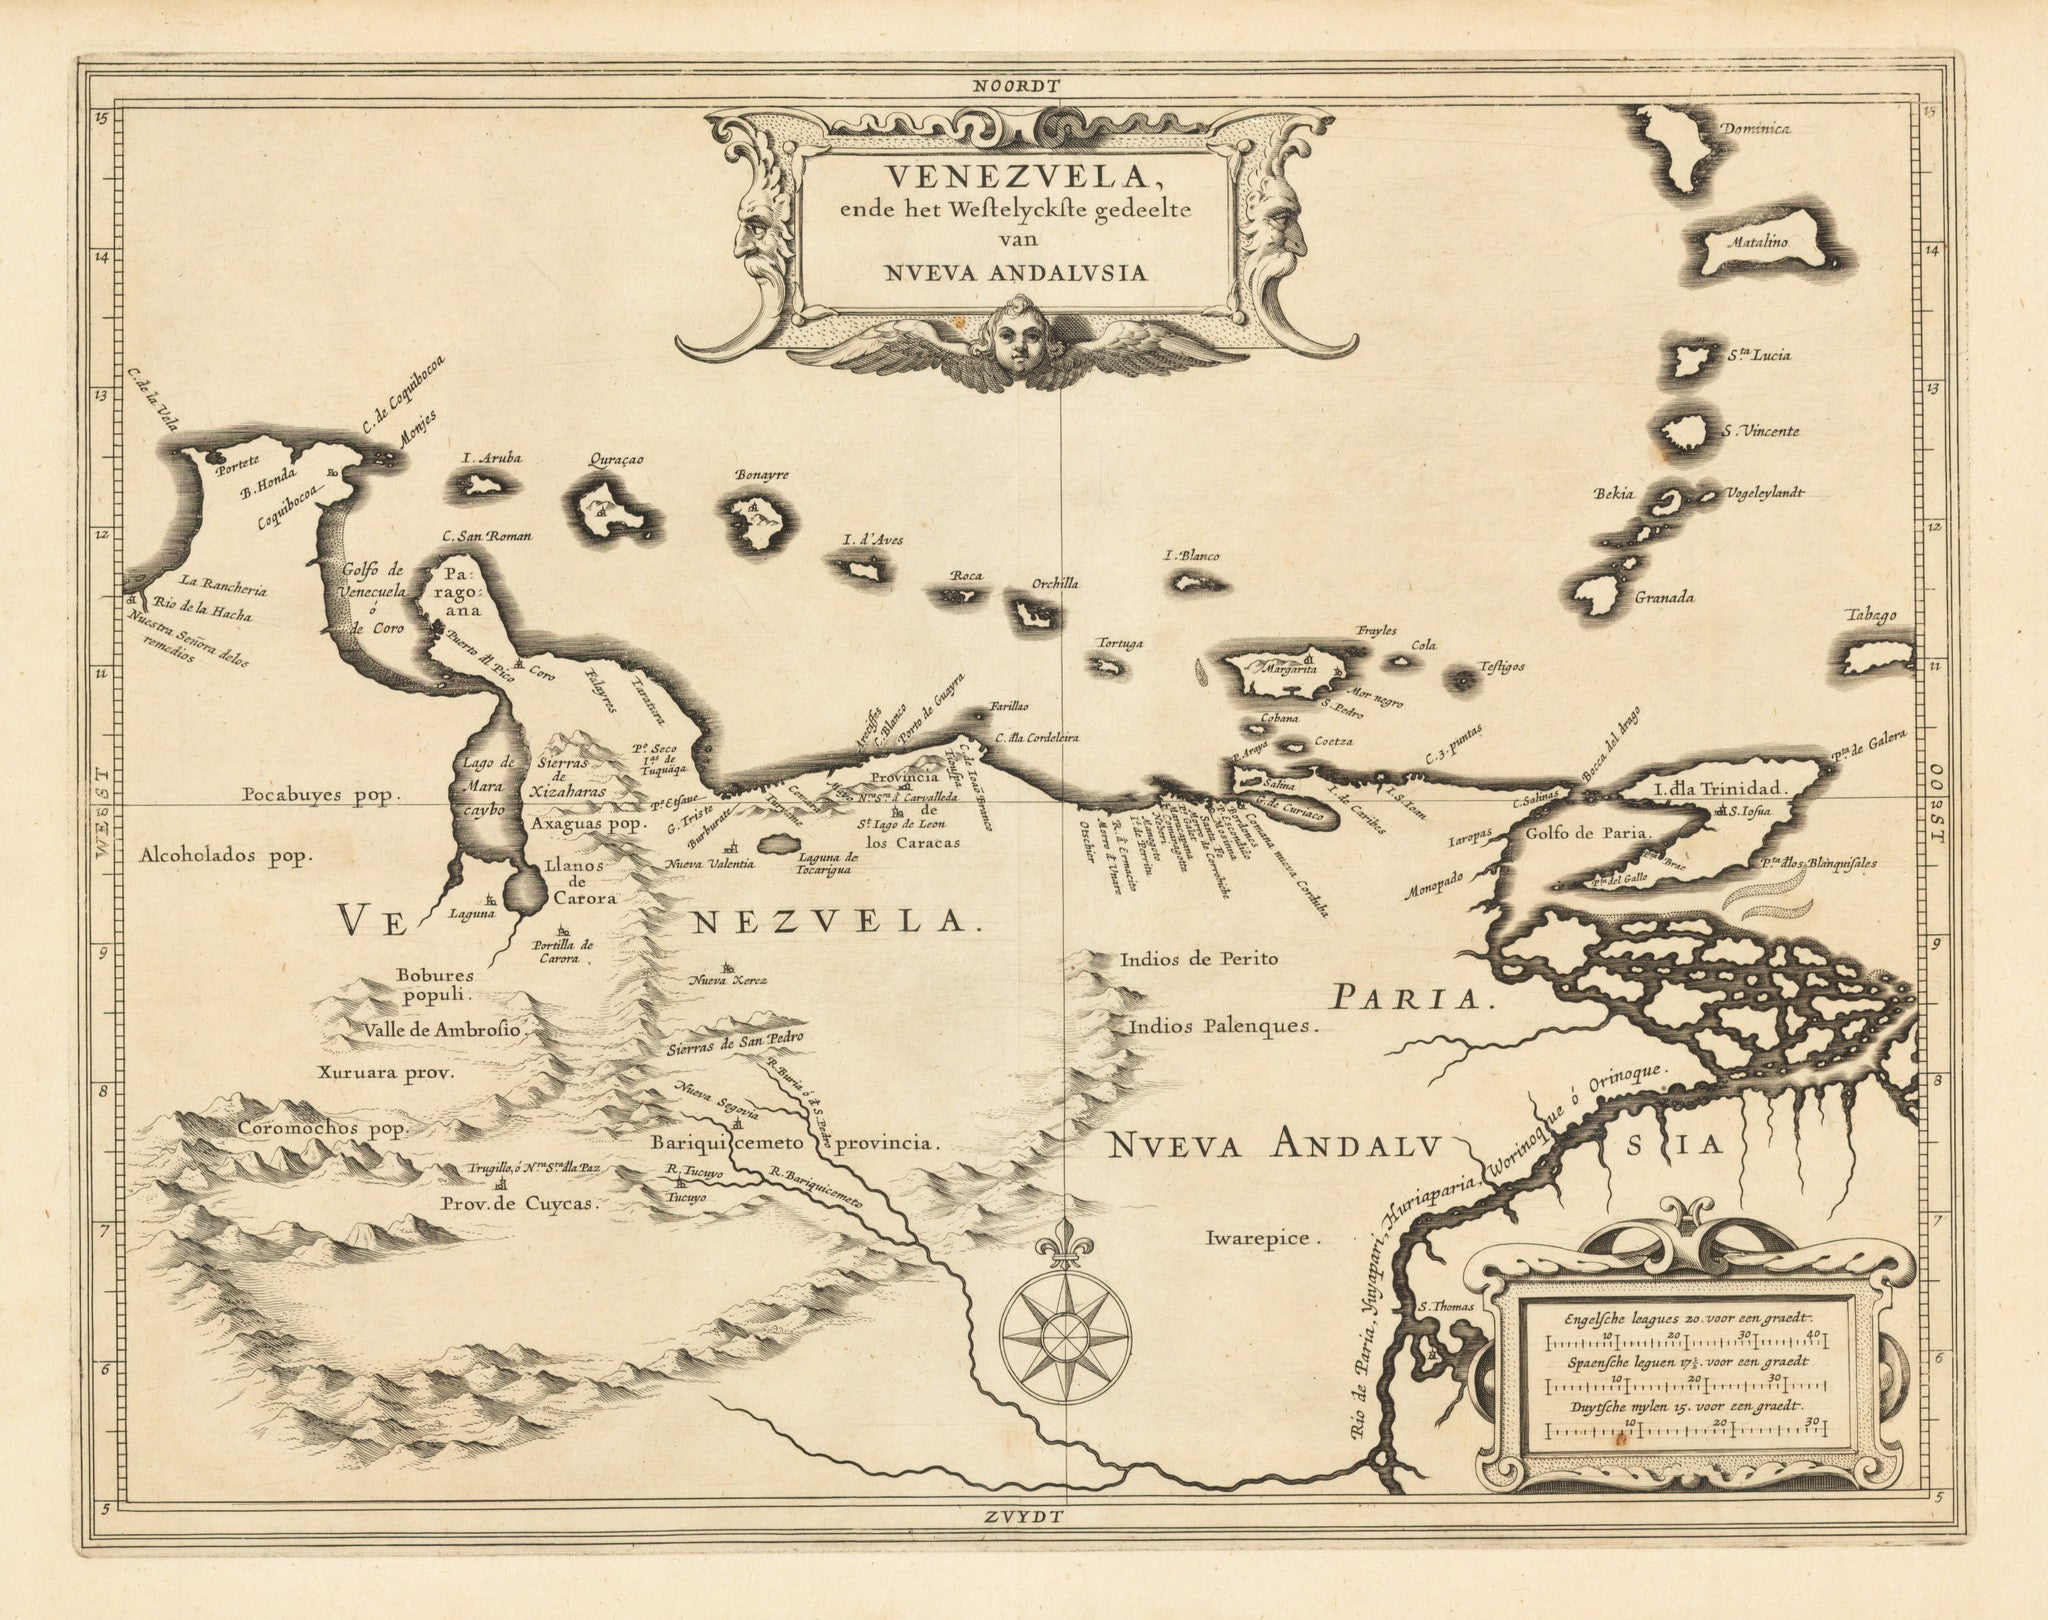 Venezuela ende het Vestelyckste gedeelte van Nveva Andalusia By: De Laet Date: 1630 Size: 11 x 14 inches - Antique Map of Venezuela and the Lesser Antilles